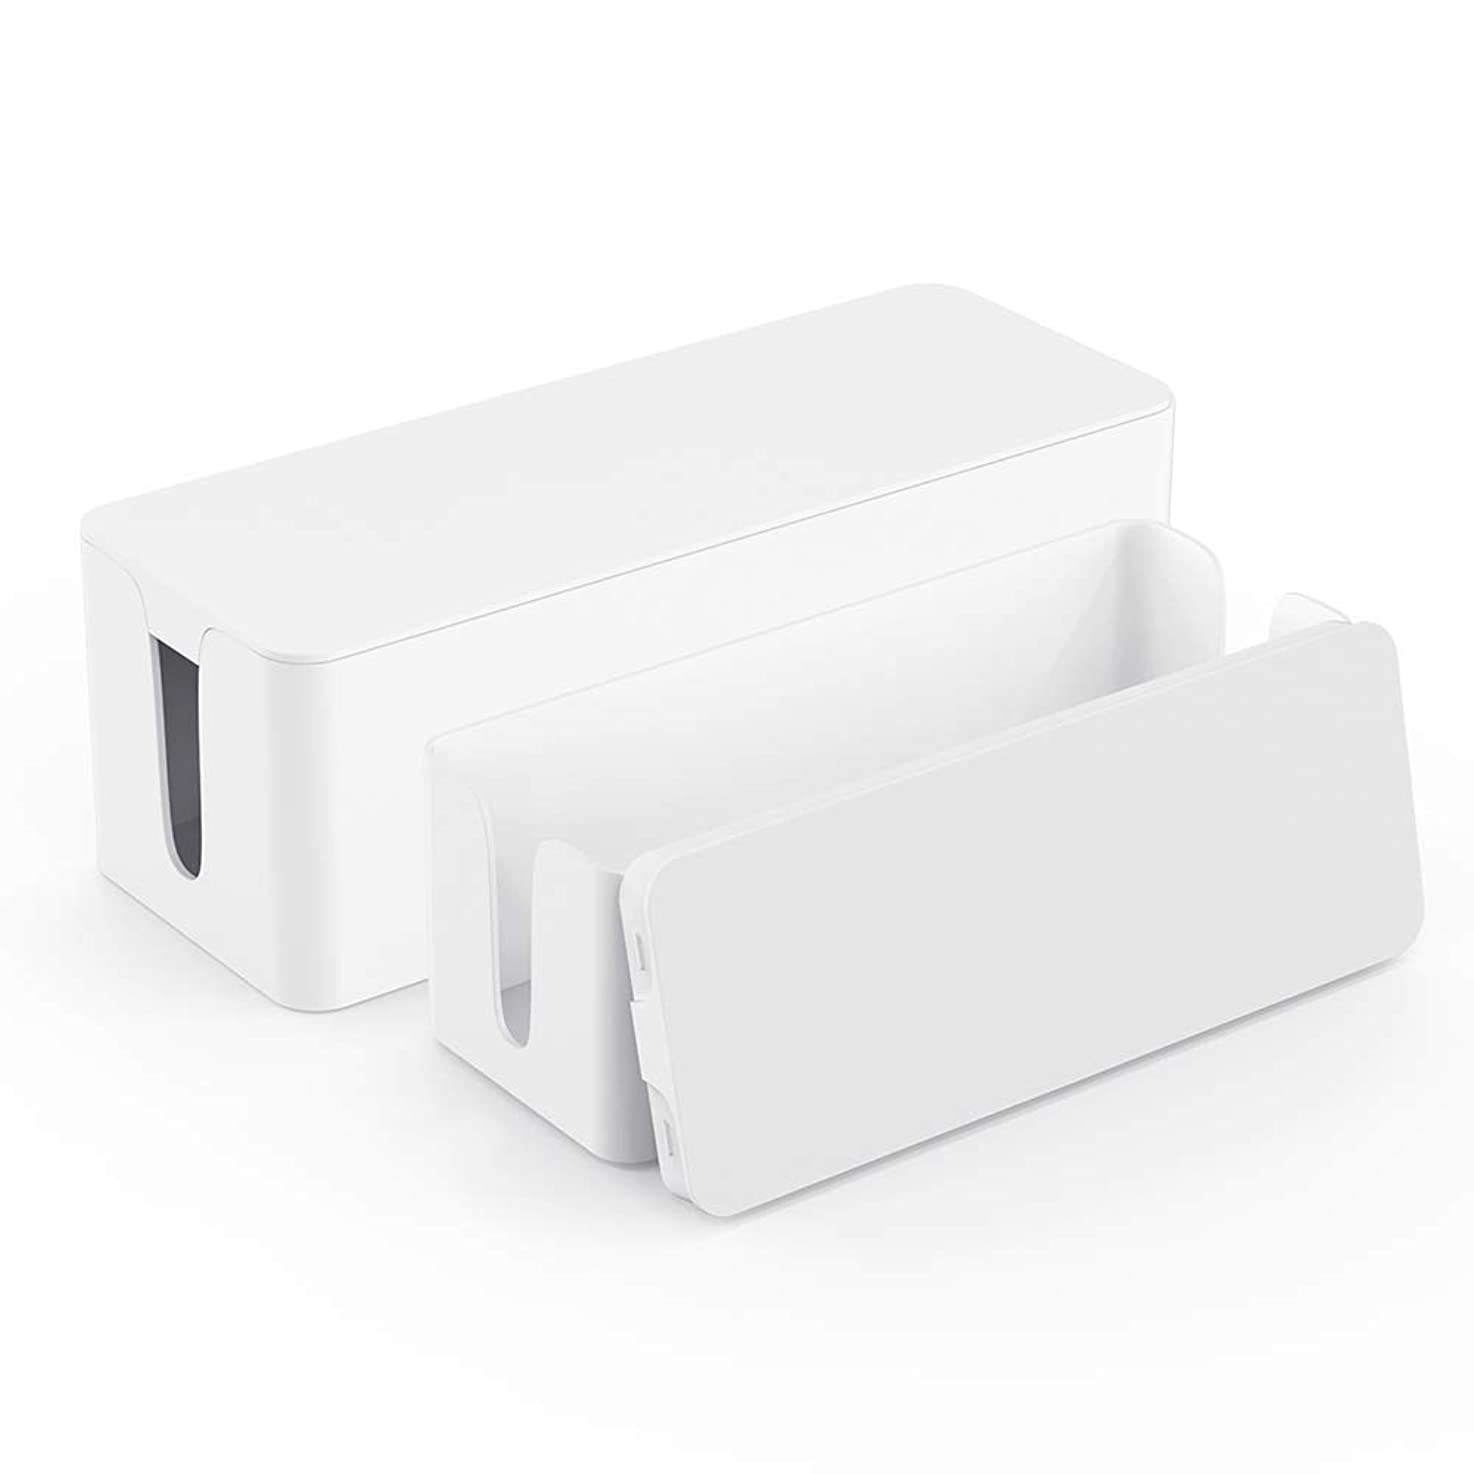 Cable Box Organizer - Power Strip Cable Management Box - Cord Hider Box for Hiding Surge Protector Cover - Set of 2, White